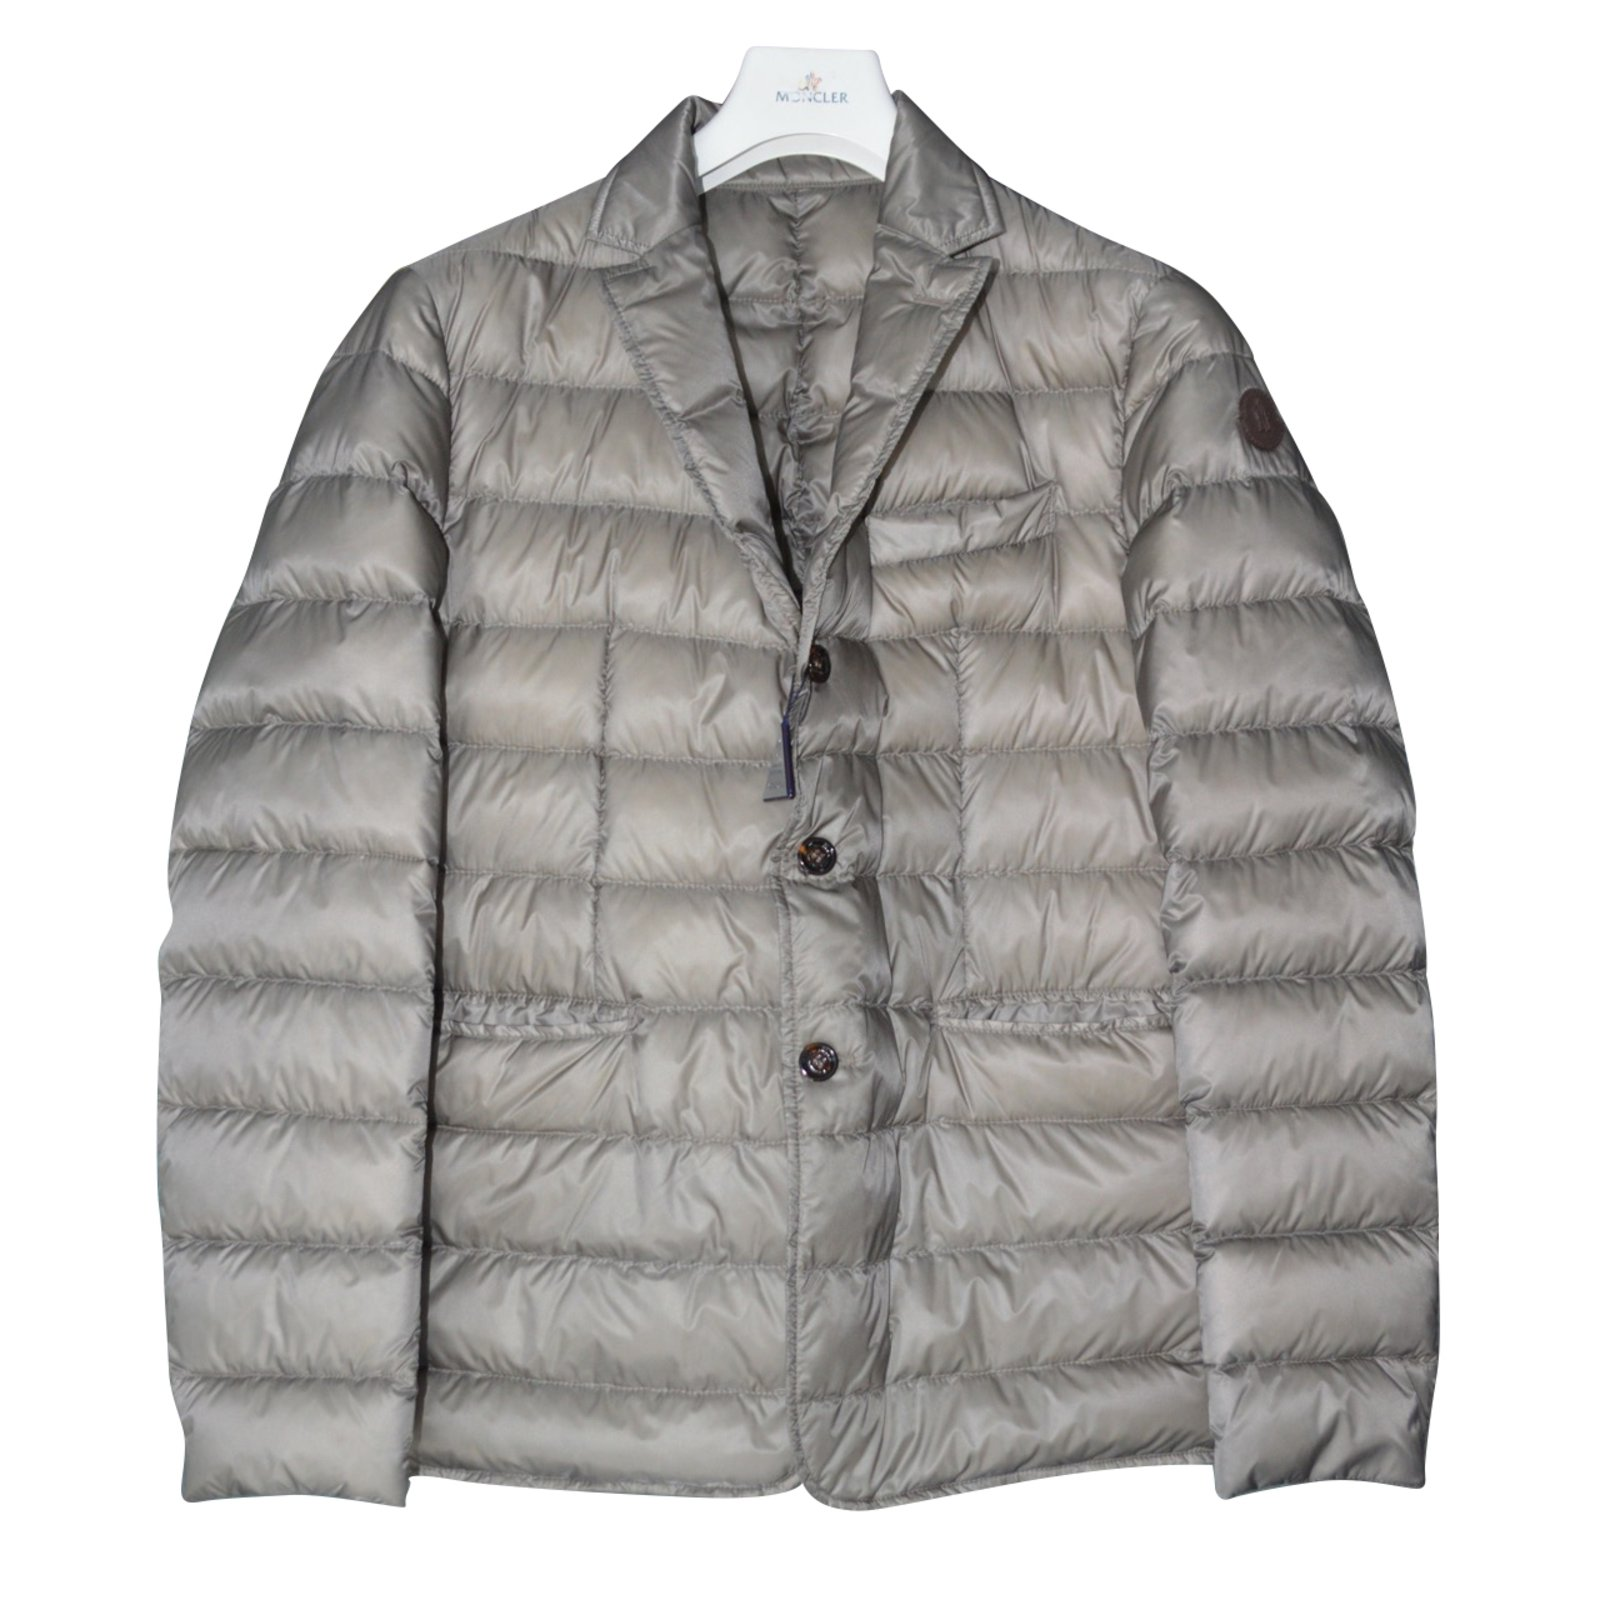 Moncler moncler amede blazer jacket new with tag tg.3 never worn Blazers Jackets Other